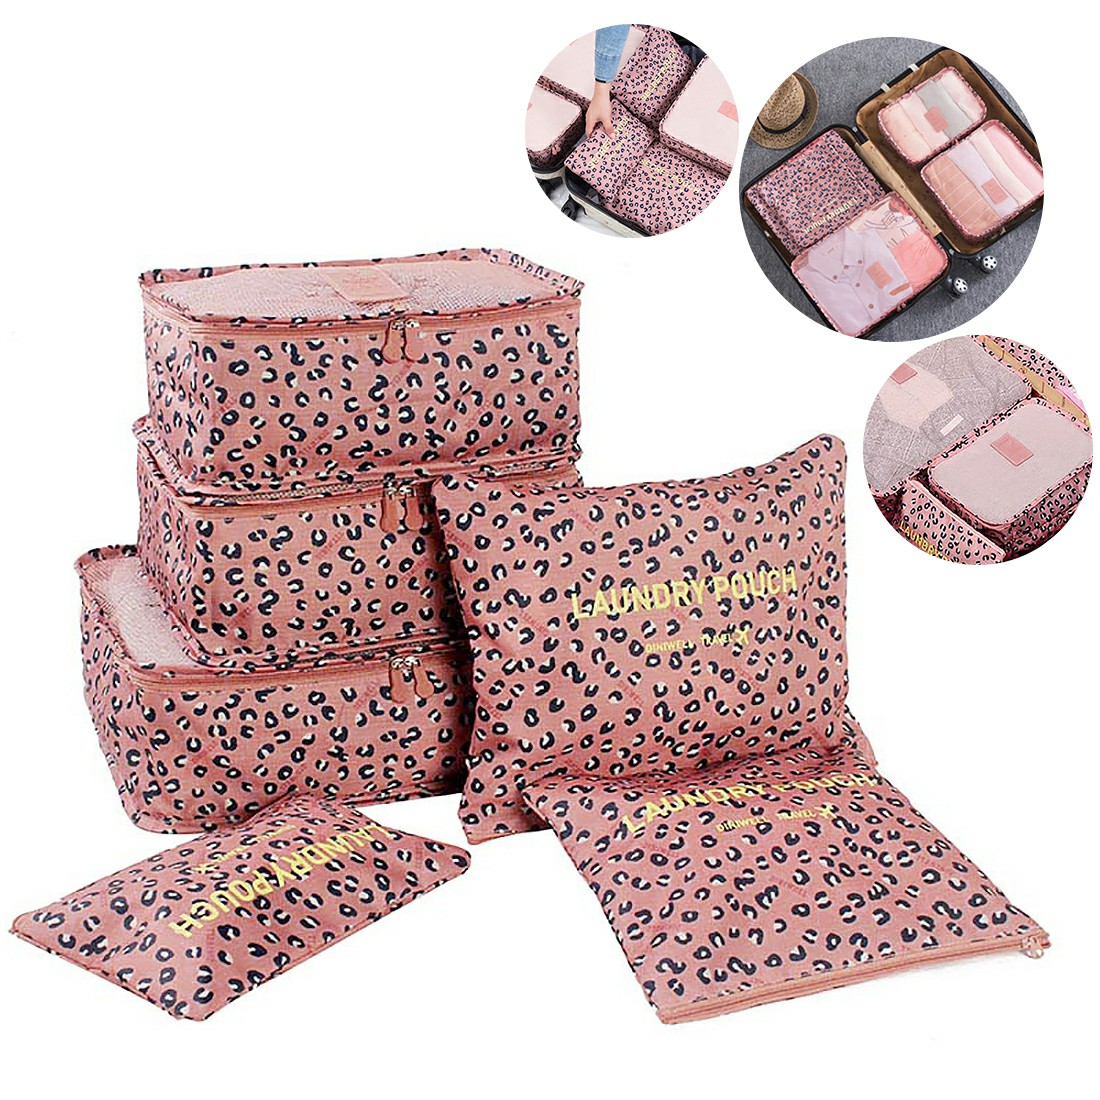 6Pcs Clothes Storage Bags Set Cube Leopard Printed Travel Home Luggage Organizer Pouch - Pink